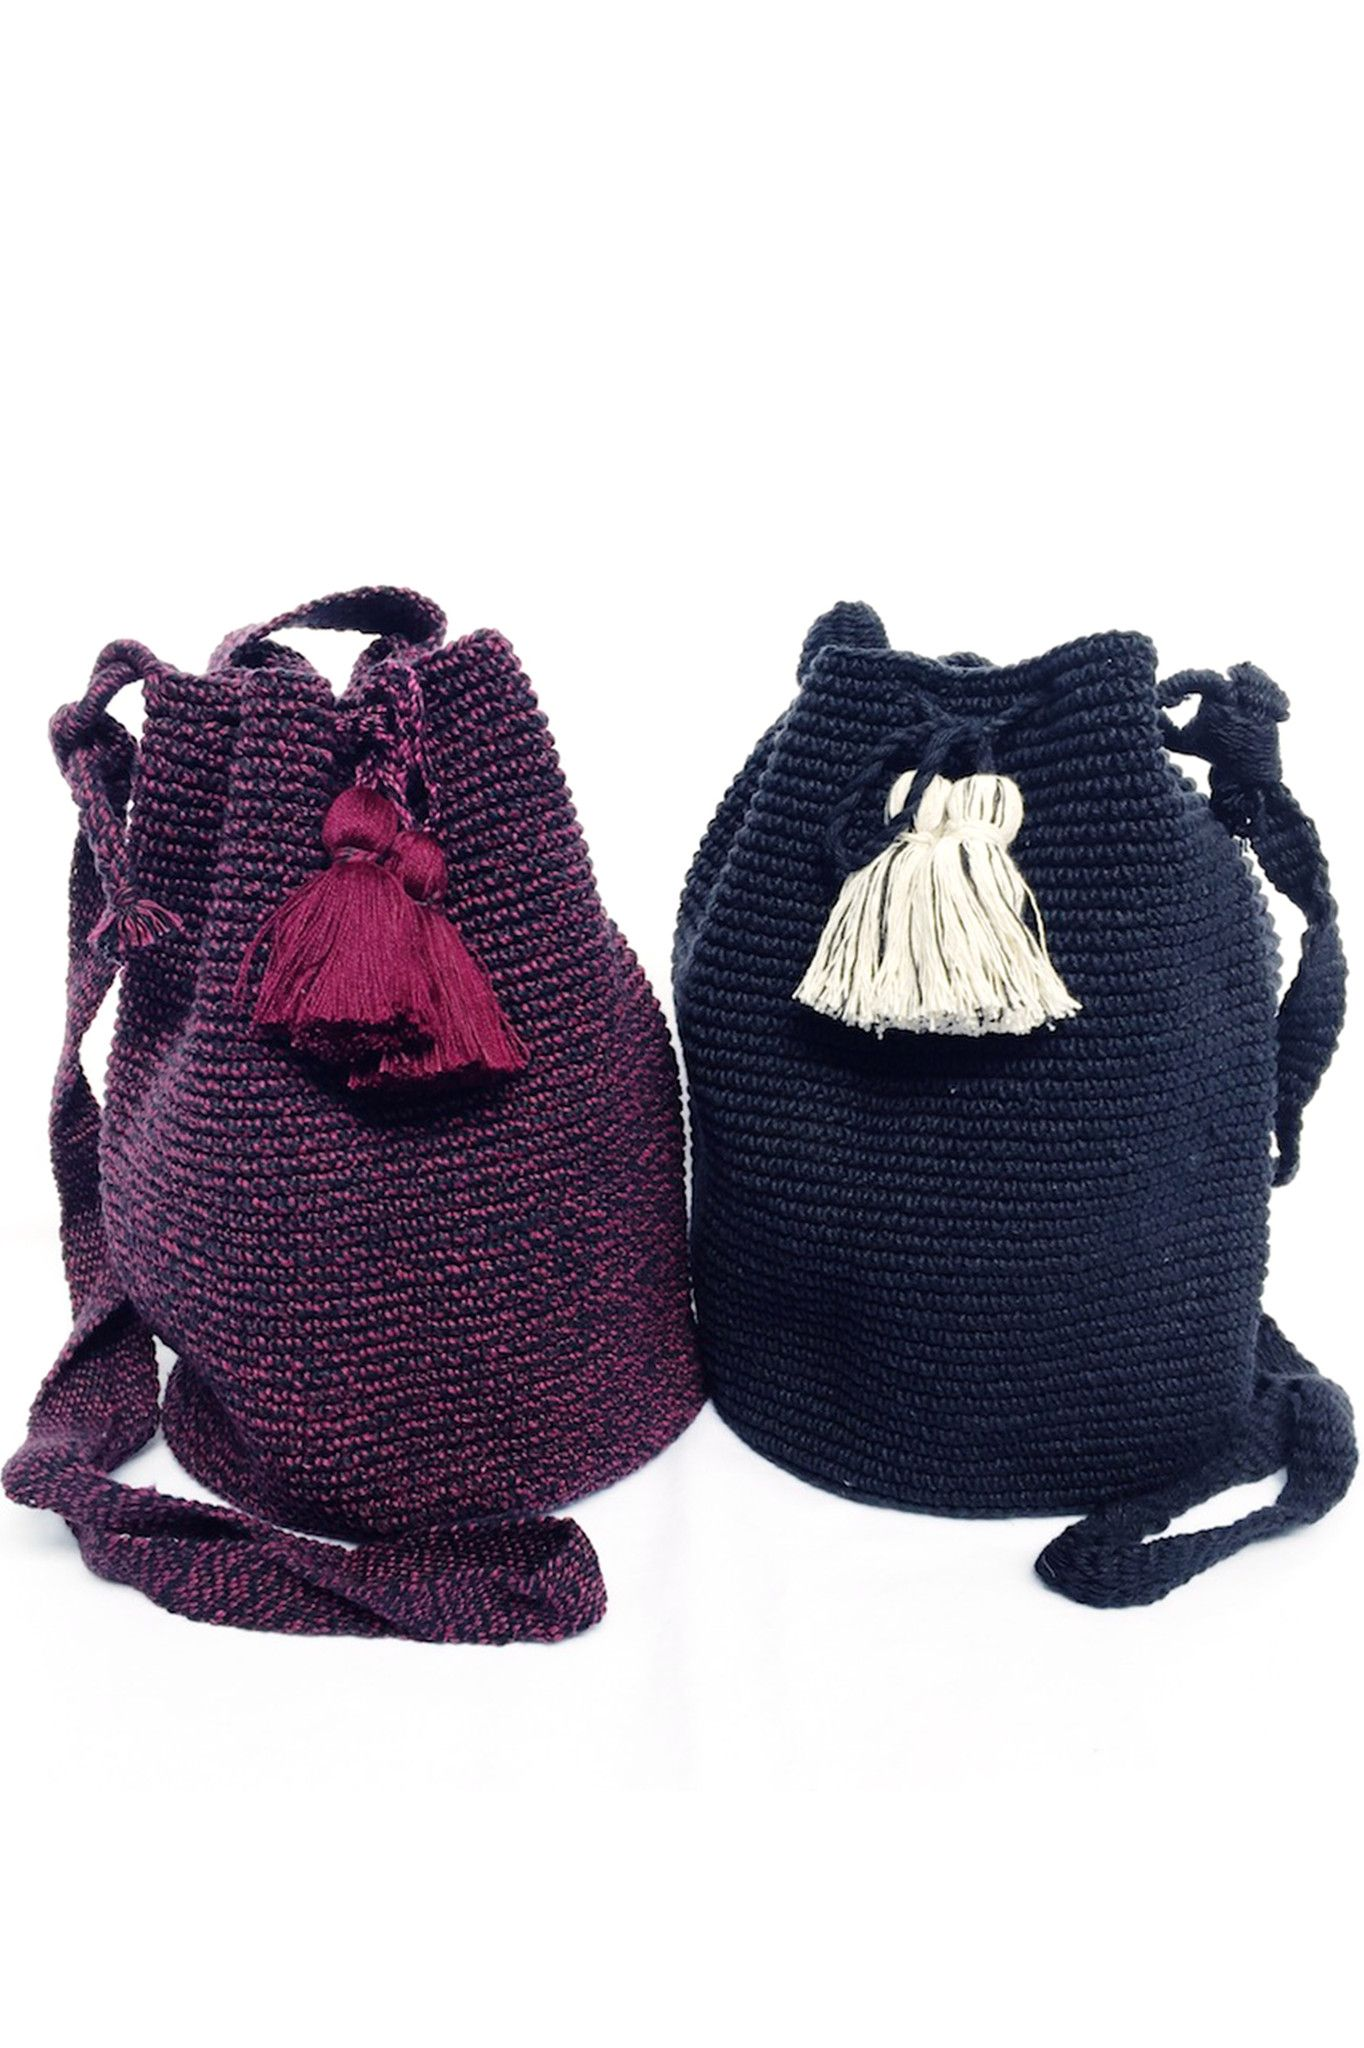 Crochet Pattern For Bucket Bag : B&W Crocheted Bucket Bag nosa Pinterest Bucket bags ...